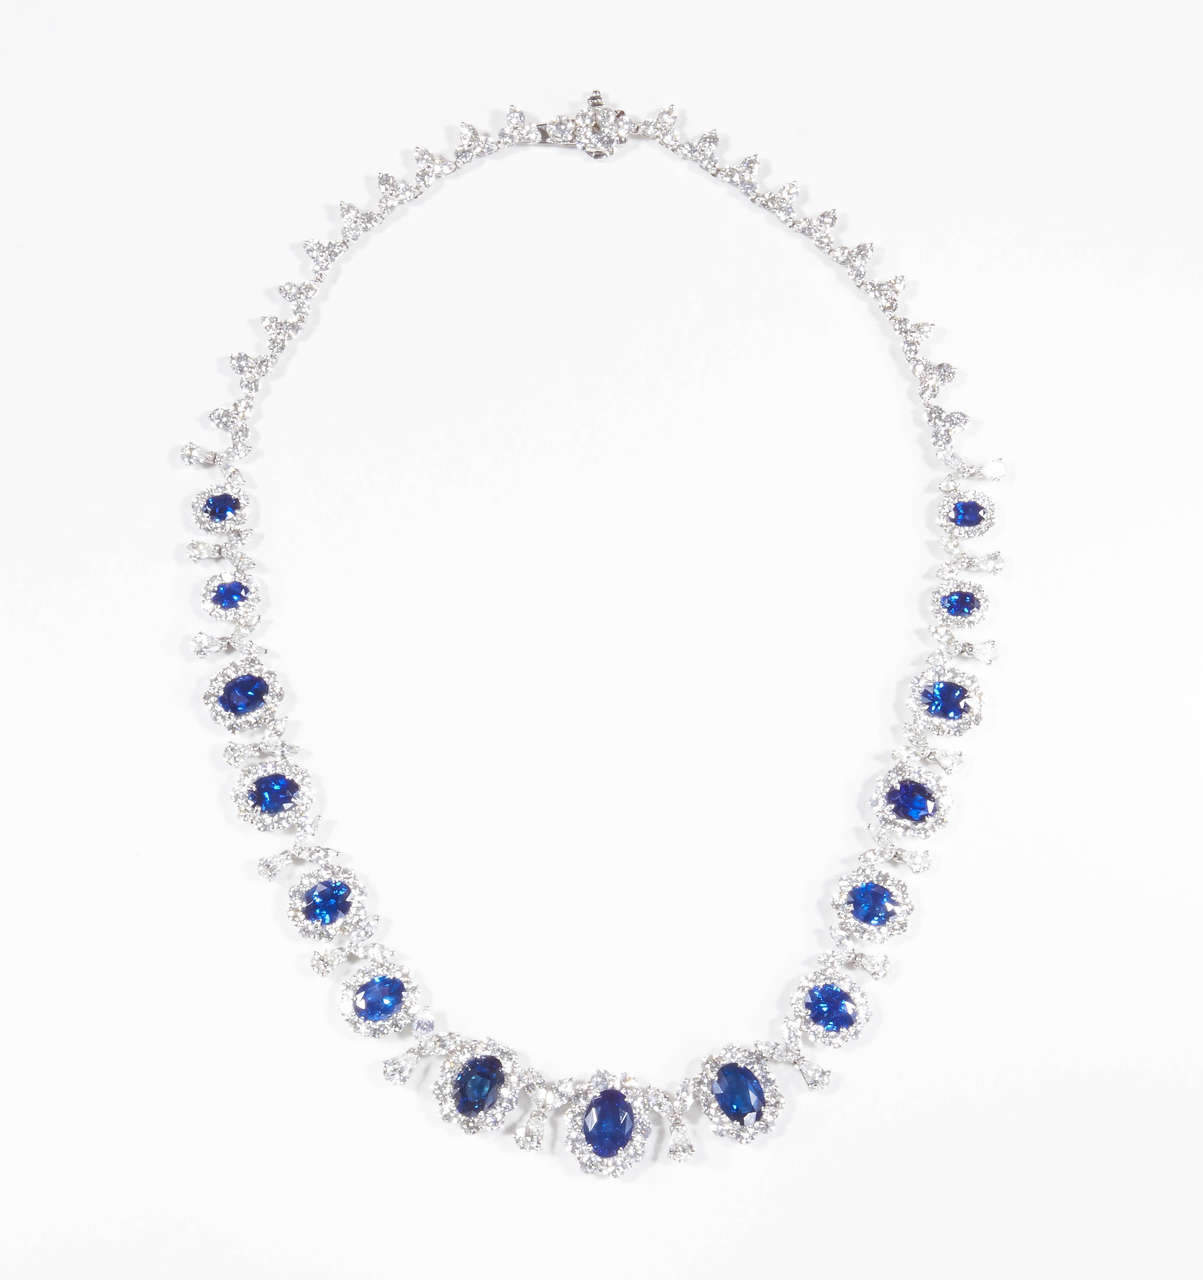 Beautiful blue oval sapphires set in a handmade 18k white gold diamond necklace.   Over 25 carats of sapphires.  Over 25 carats of white diamonds.  Please contact us for more information.